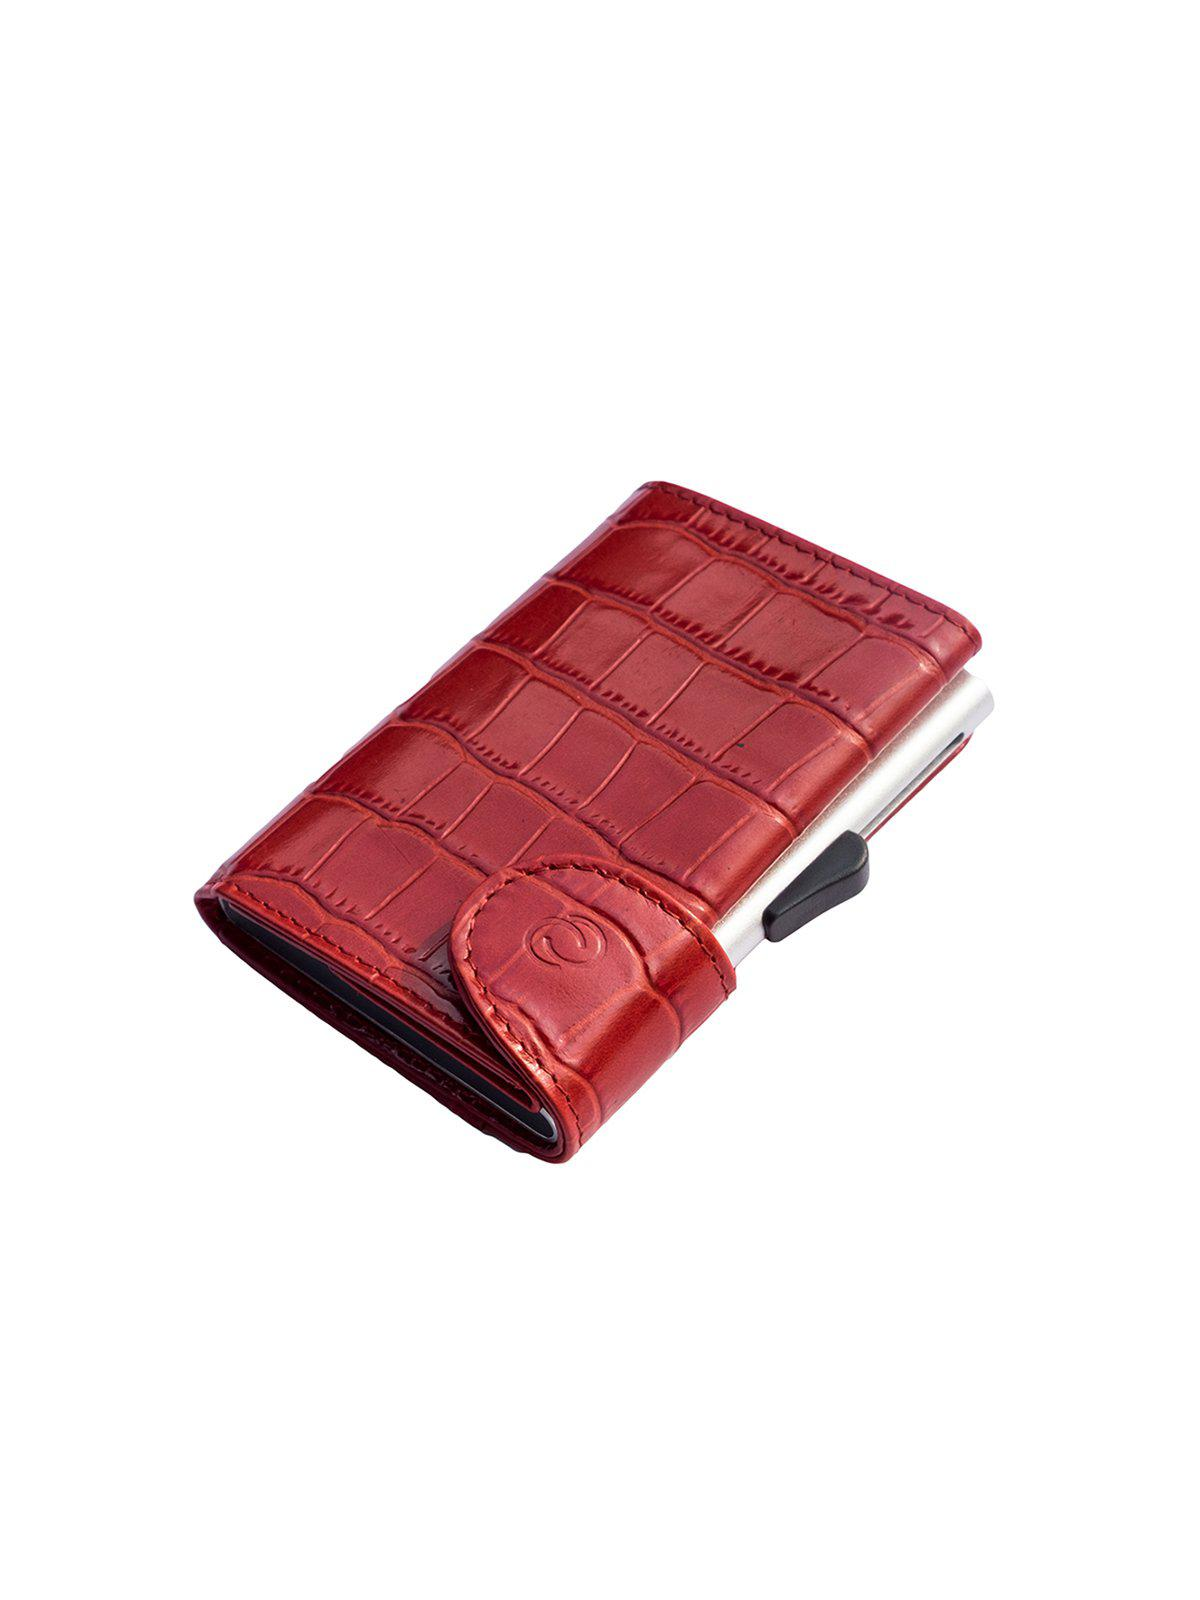 C-Secure Croco Leather RFID Wallet Red - MORE by Morello Indonesia